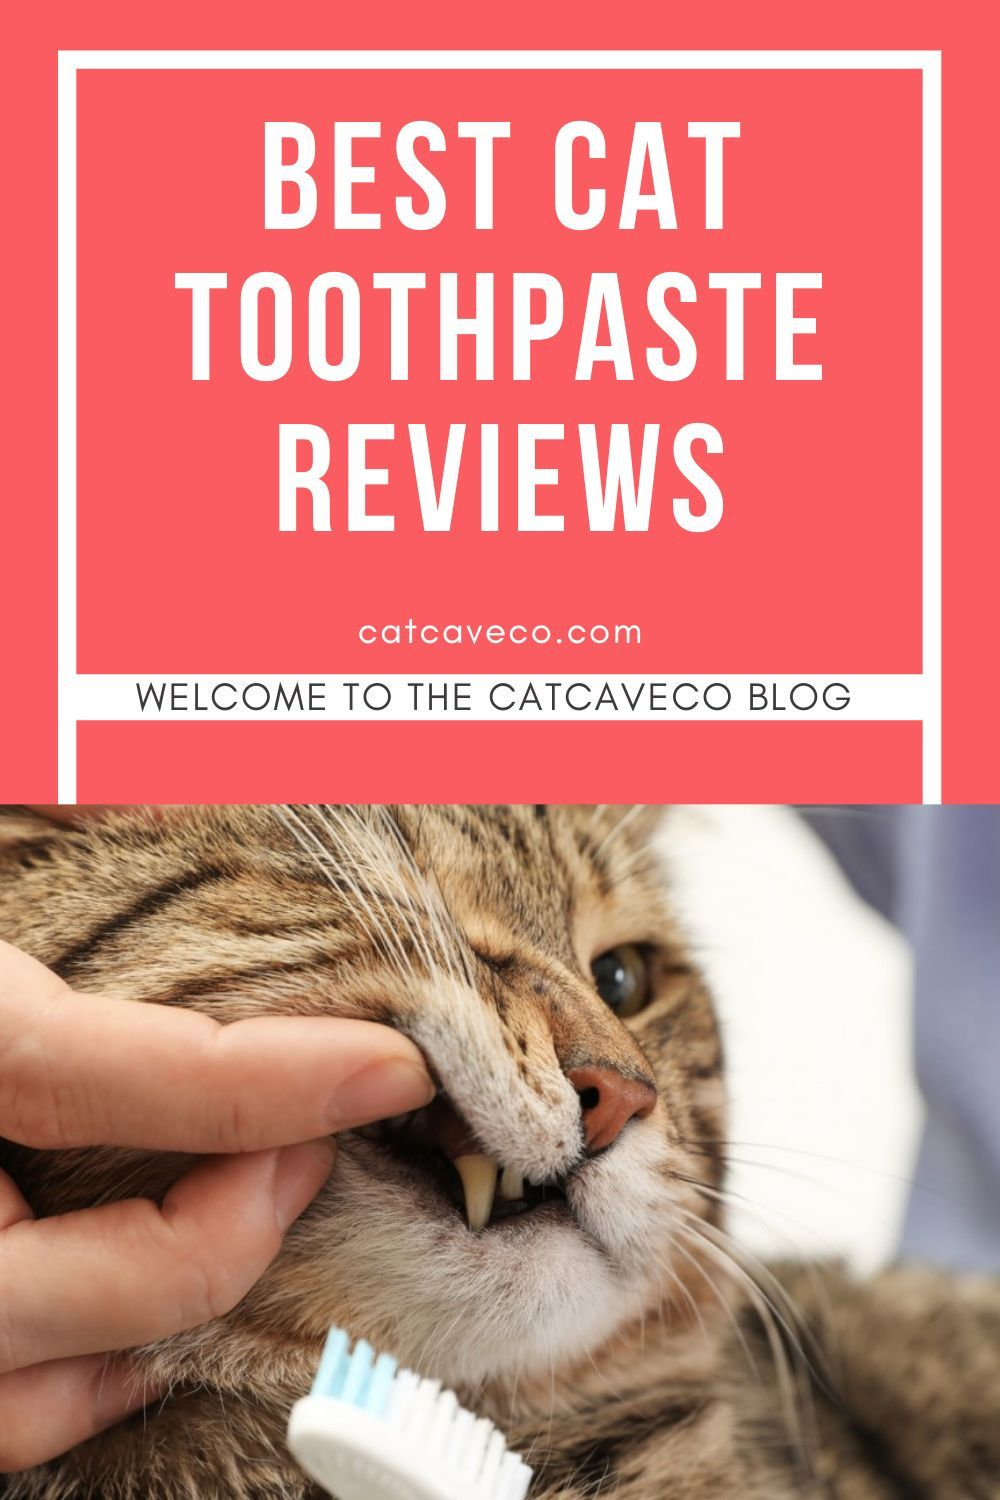 Best Cat Toothpaste And Teeth Cleaning Guide In 2020 Cats Cool Cats Teeth Cleaning